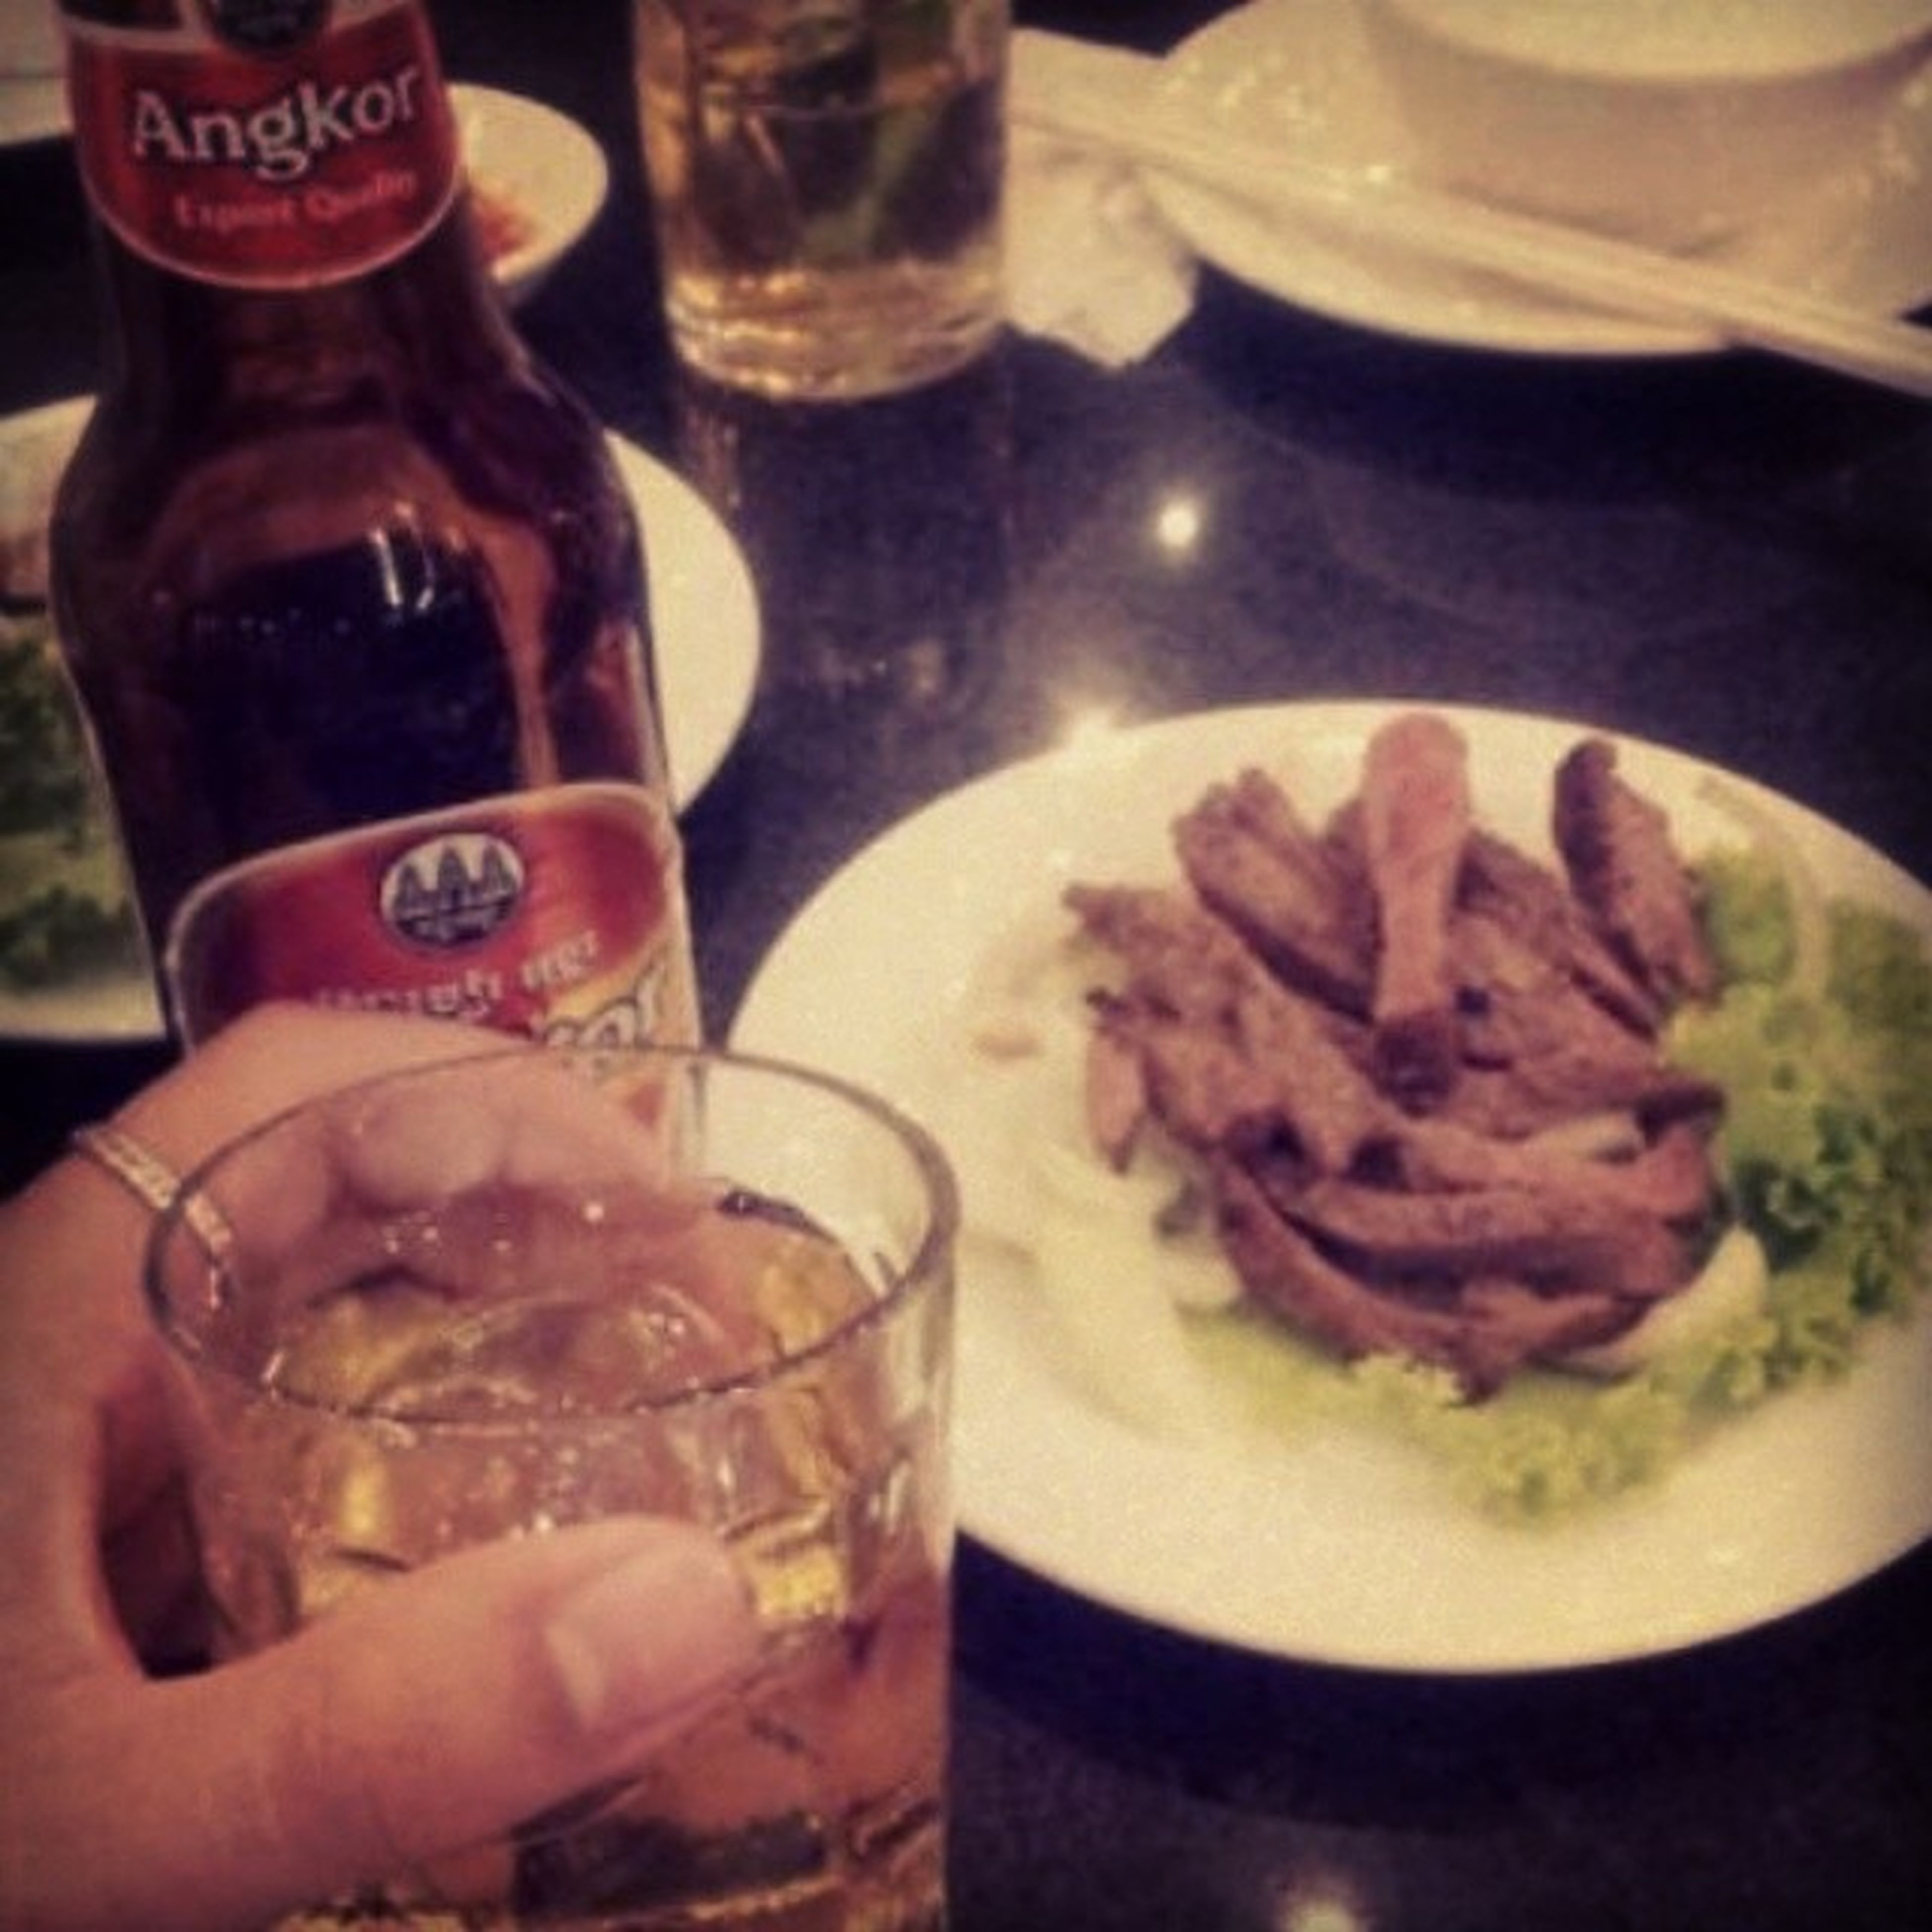 food and drink, food, freshness, indoors, drink, ready-to-eat, refreshment, indulgence, drinking glass, unhealthy eating, table, close-up, person, restaurant, serving size, plate, temptation, part of